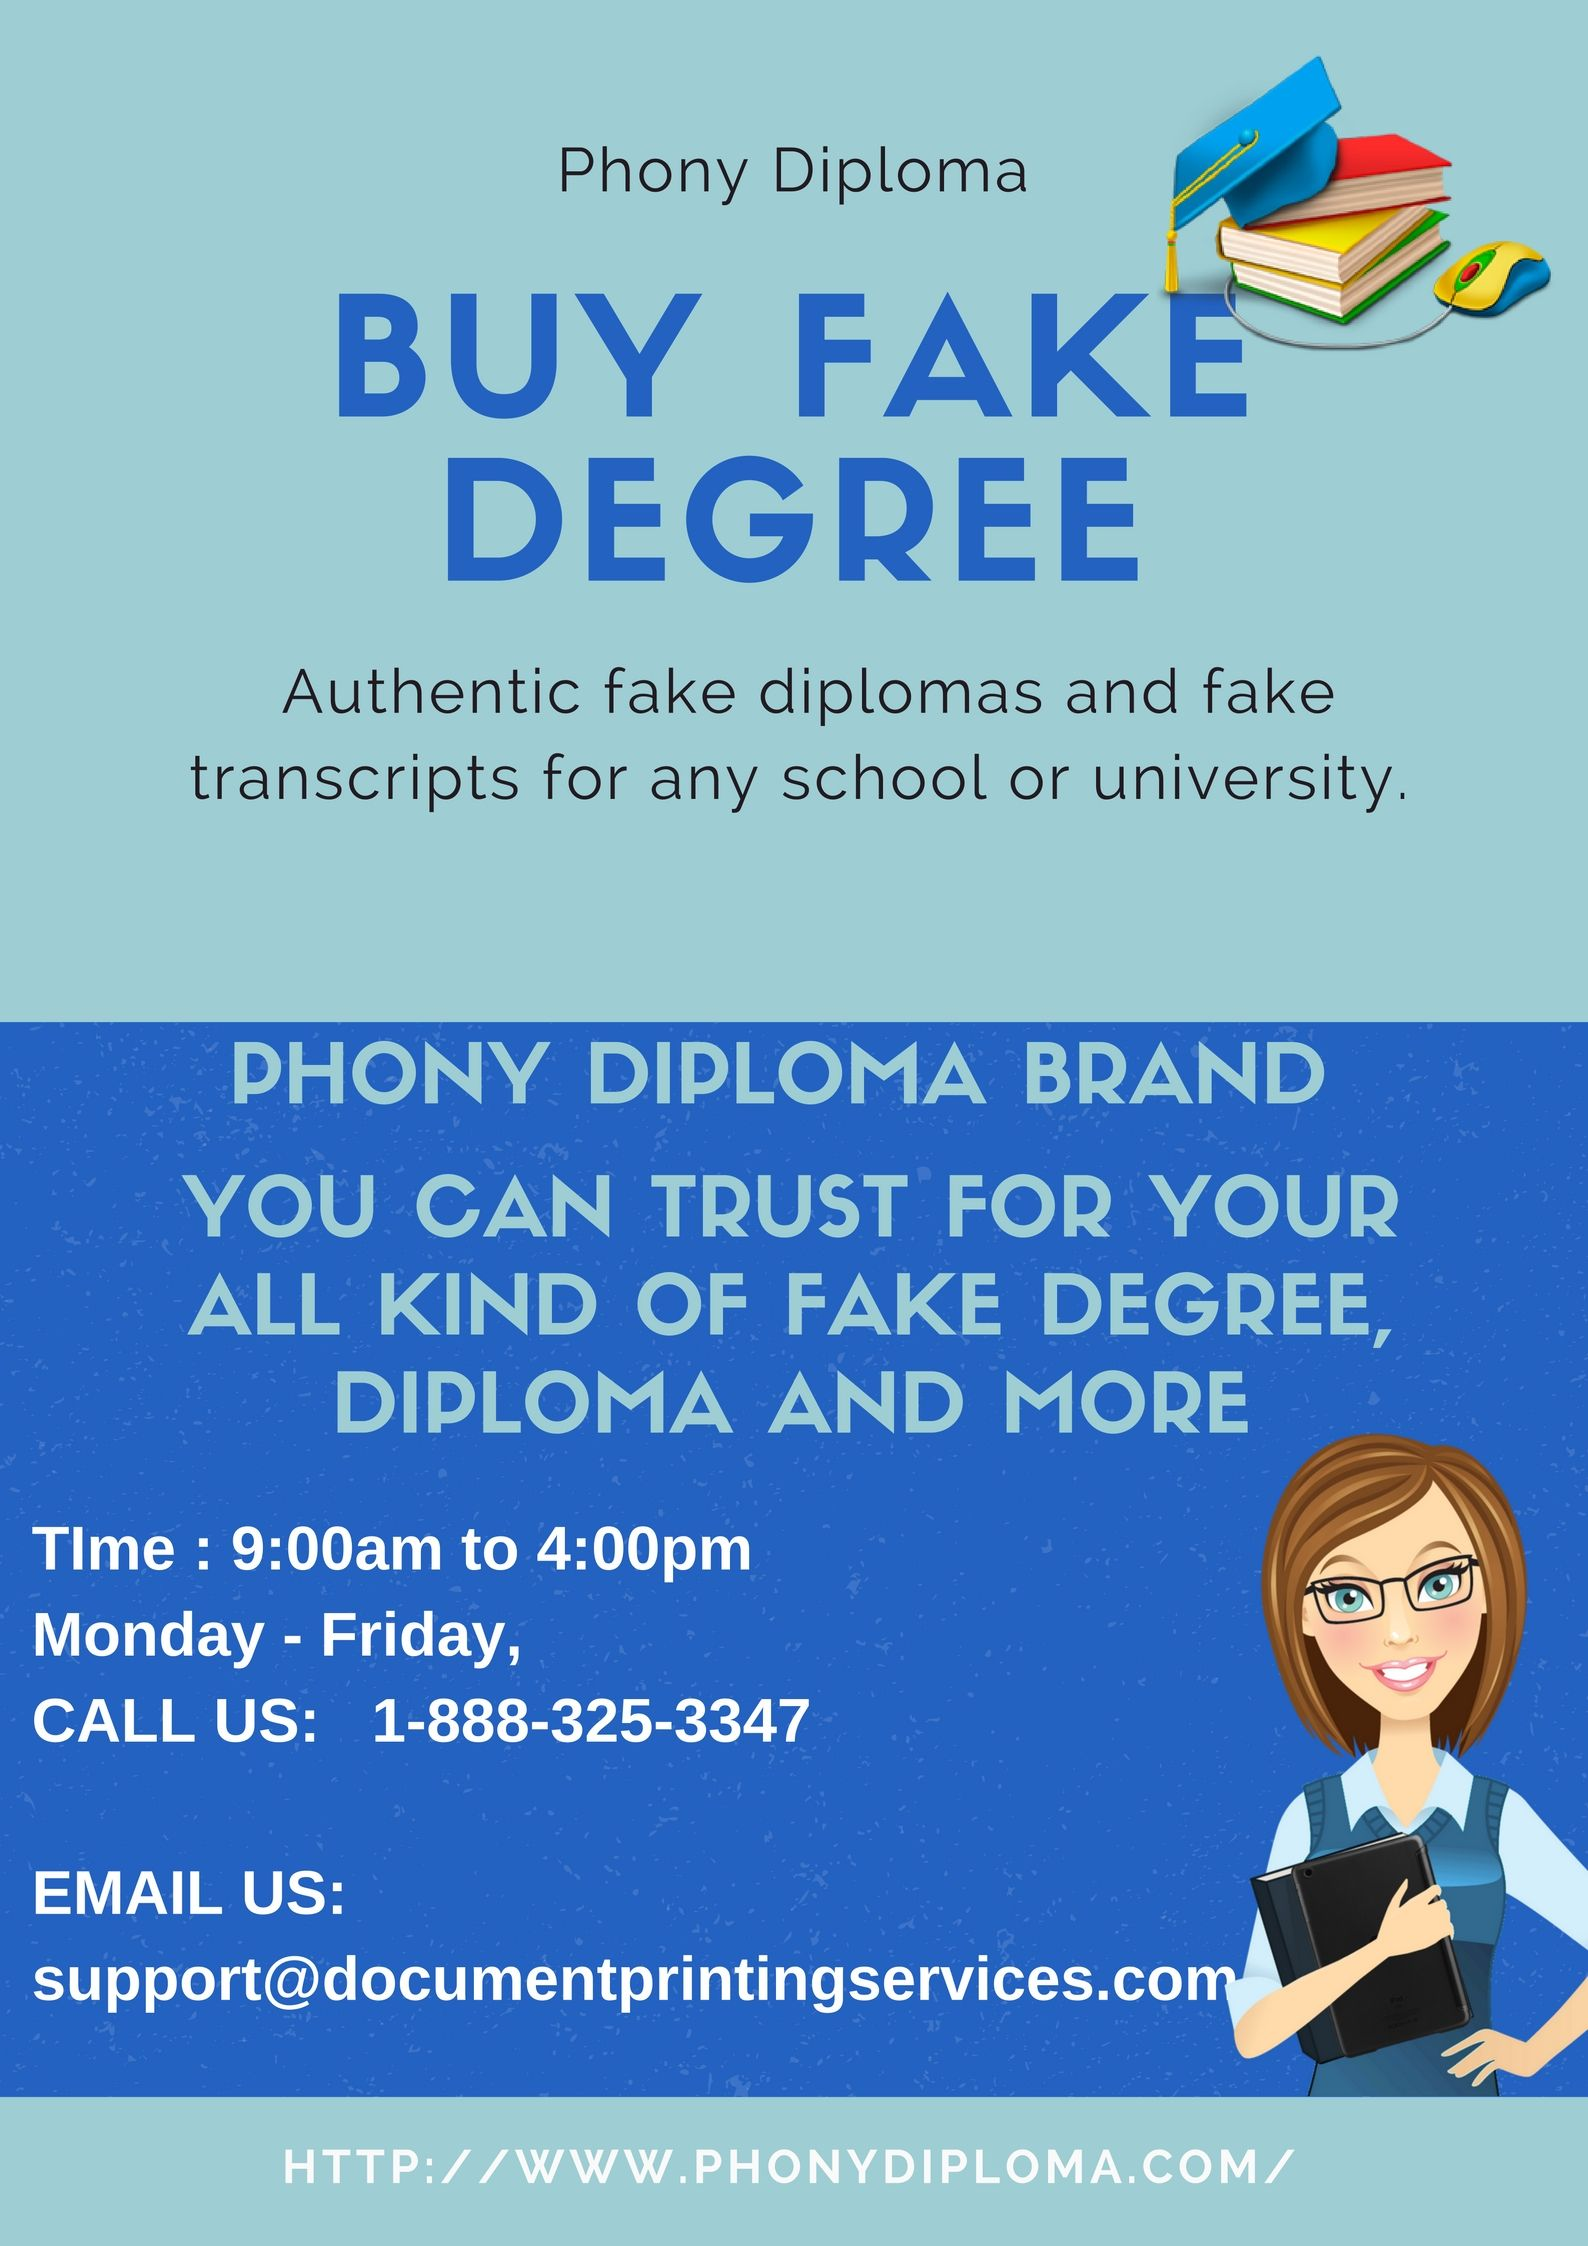 Are You Looking For Fake Diploma At Phony Diploma You Will Get